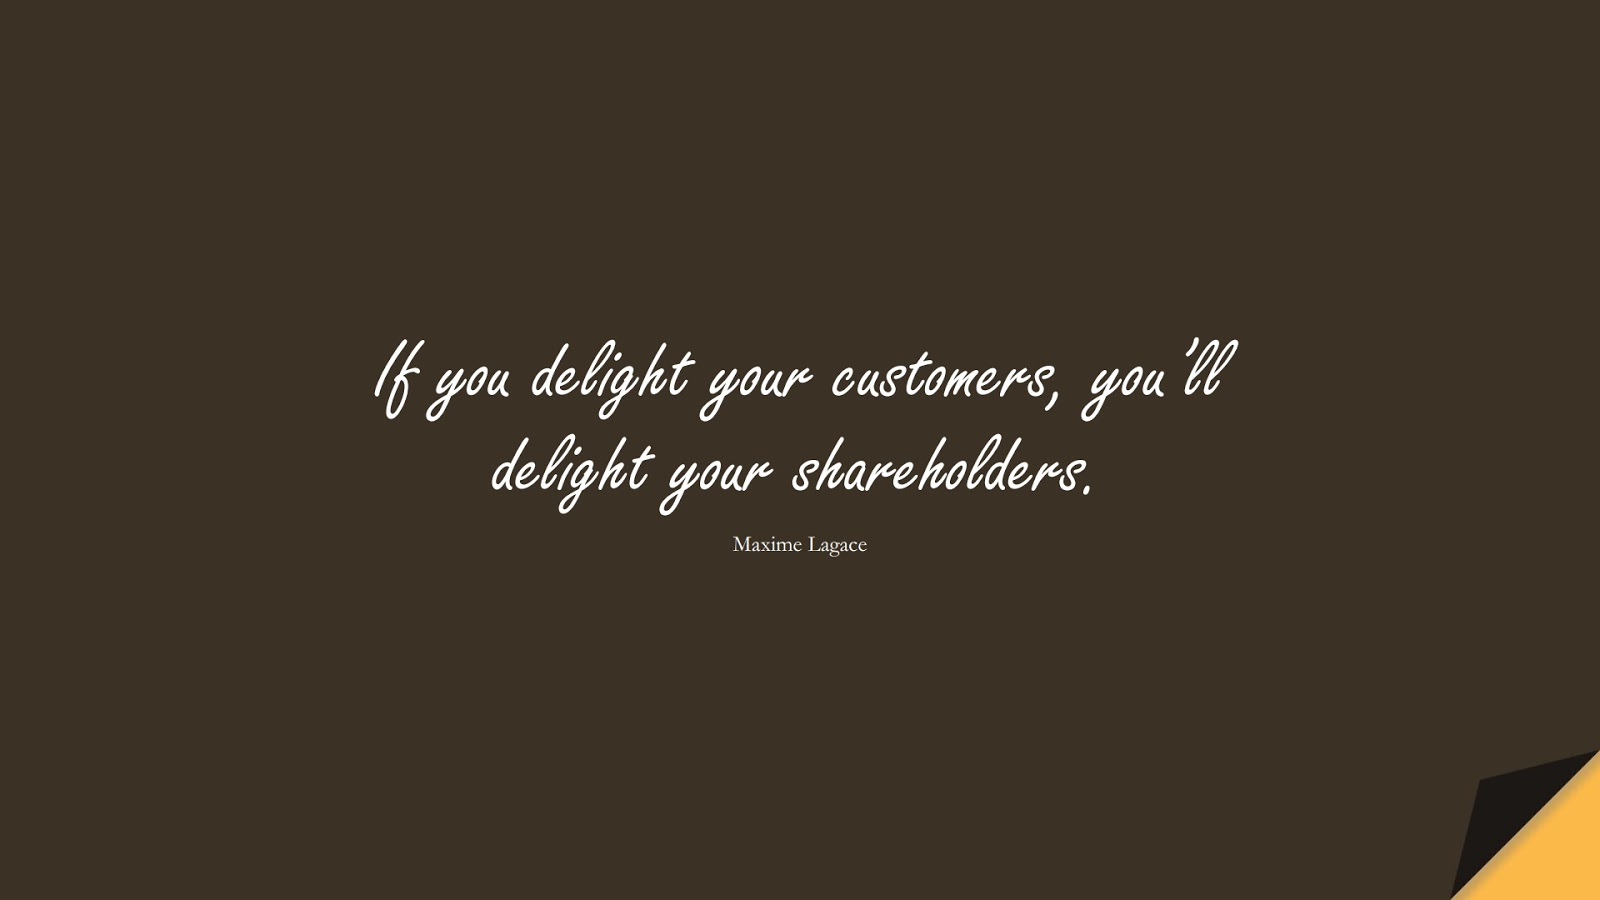 If you delight your customers, you'll delight your shareholders. (Maxime Lagace);  #SuccessQuotes